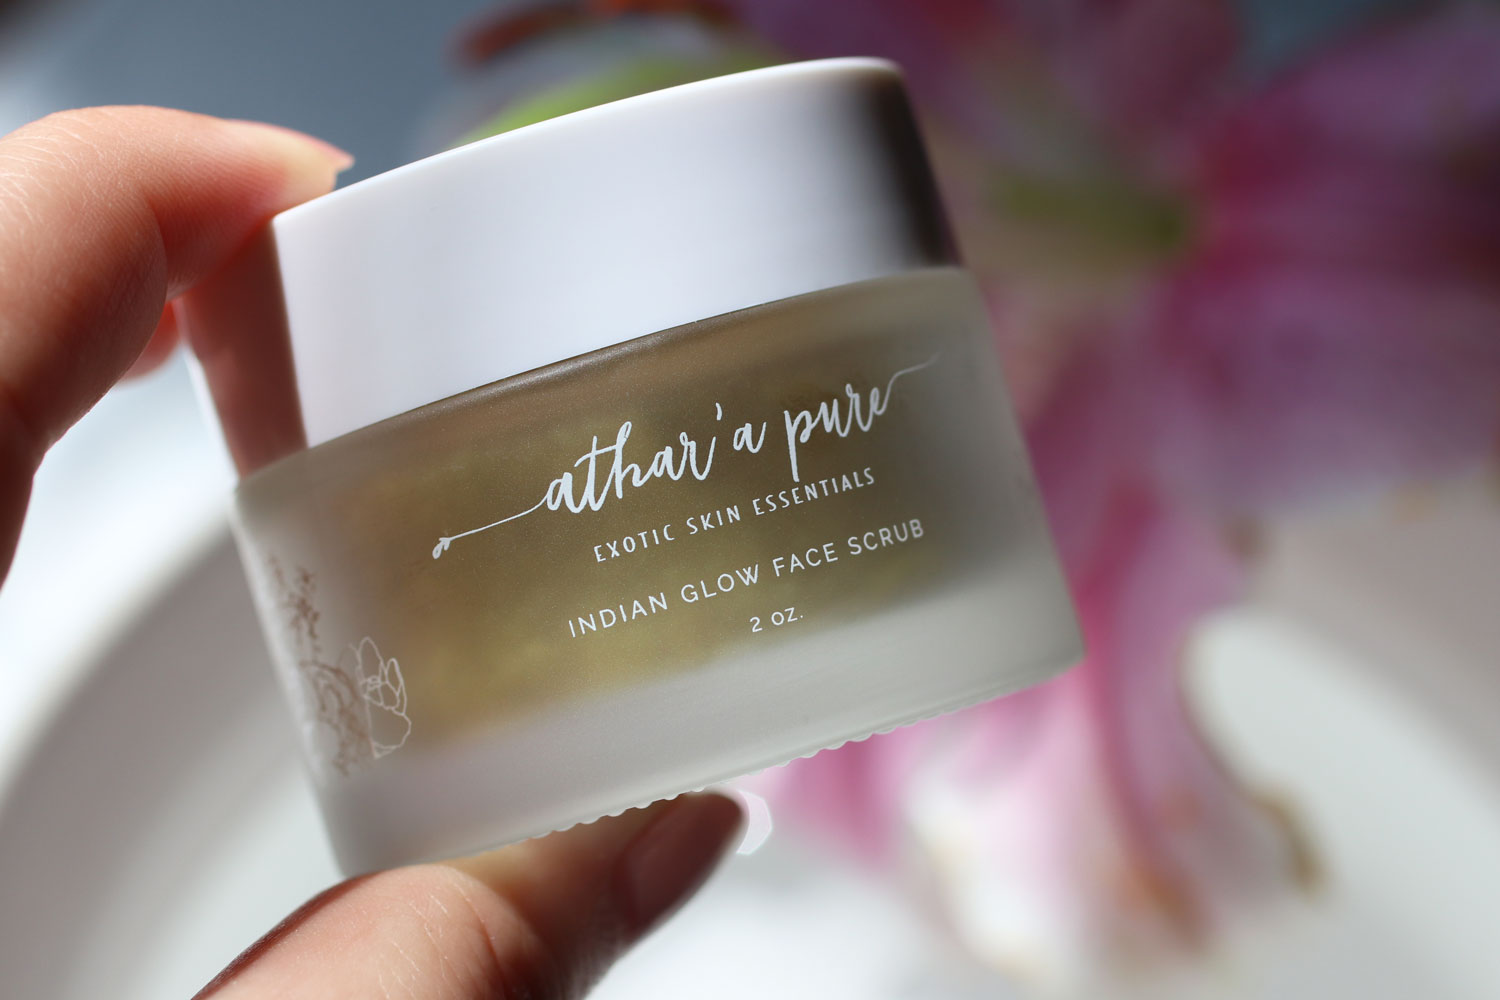 Athar'a Pure Indian Glow Face Scrub with turmeric and neem